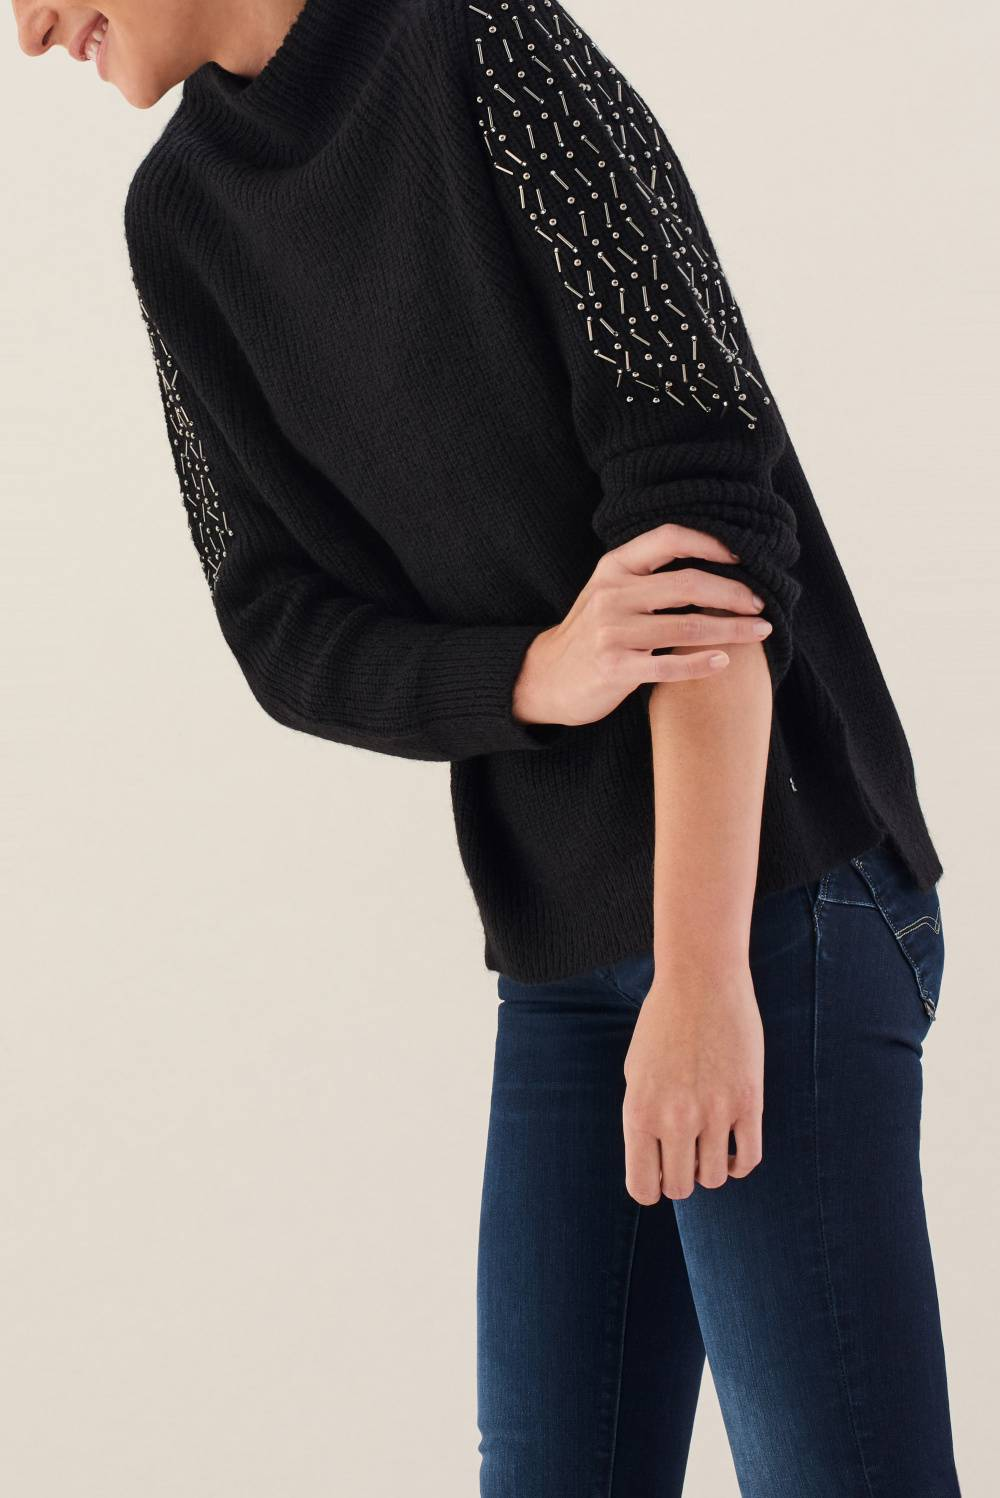 Sweatshirt with pearls - Salsa